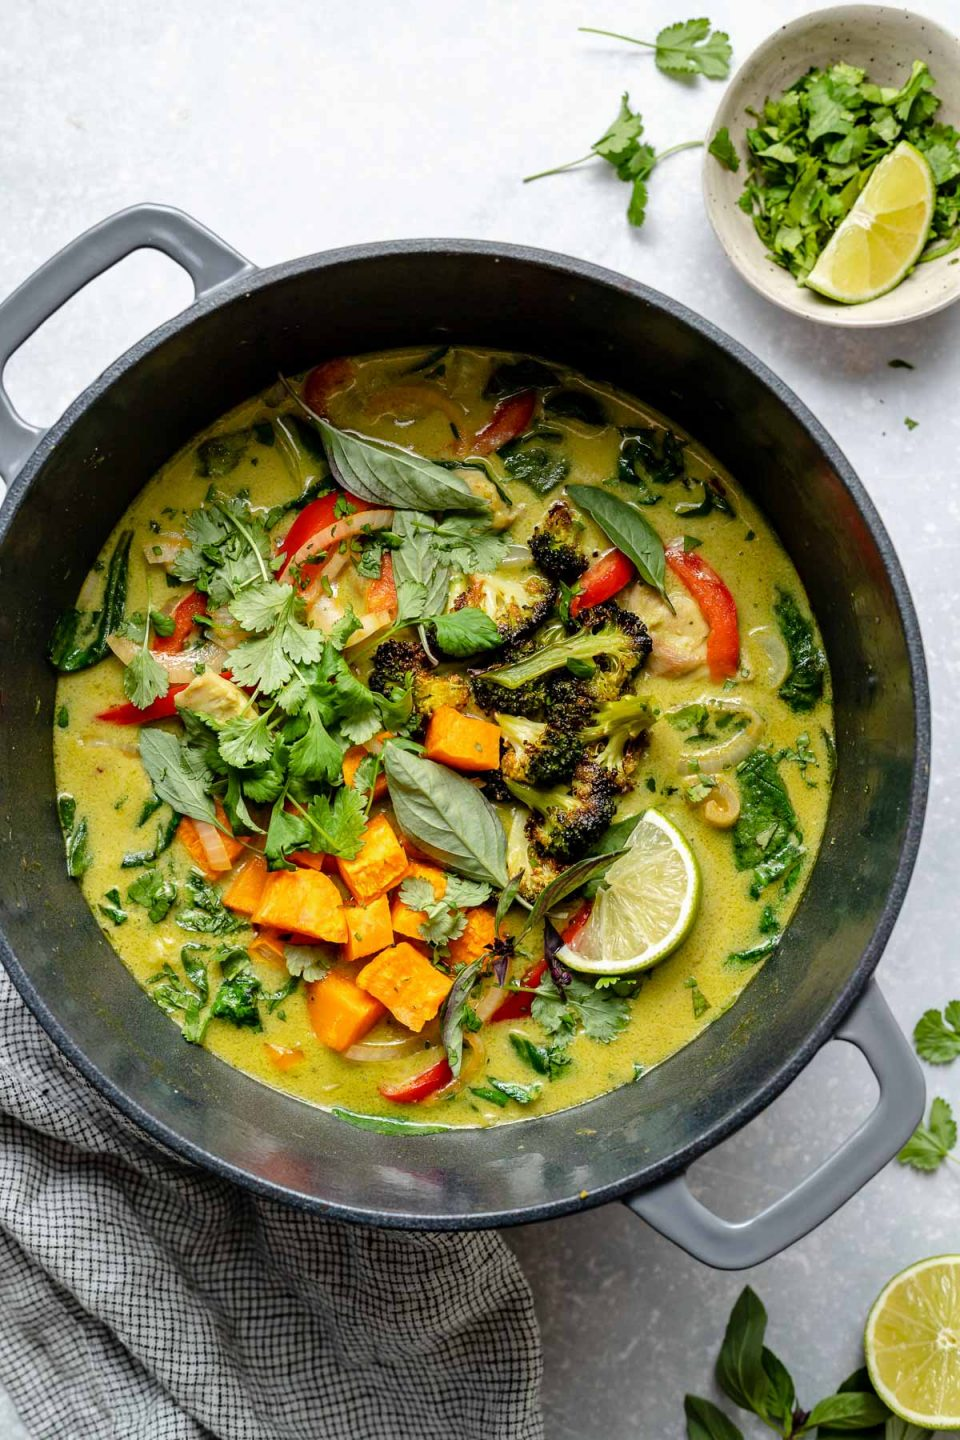 Thai green chicken curry in a large Dutch oven atop a light blue surface. The curry is topped with fresh cilantro & Thai basil. The Dutch oven sits atop a light blue surface next to a checkered blue & white linen napkin, limes & a small bowl of chopped green herbs.